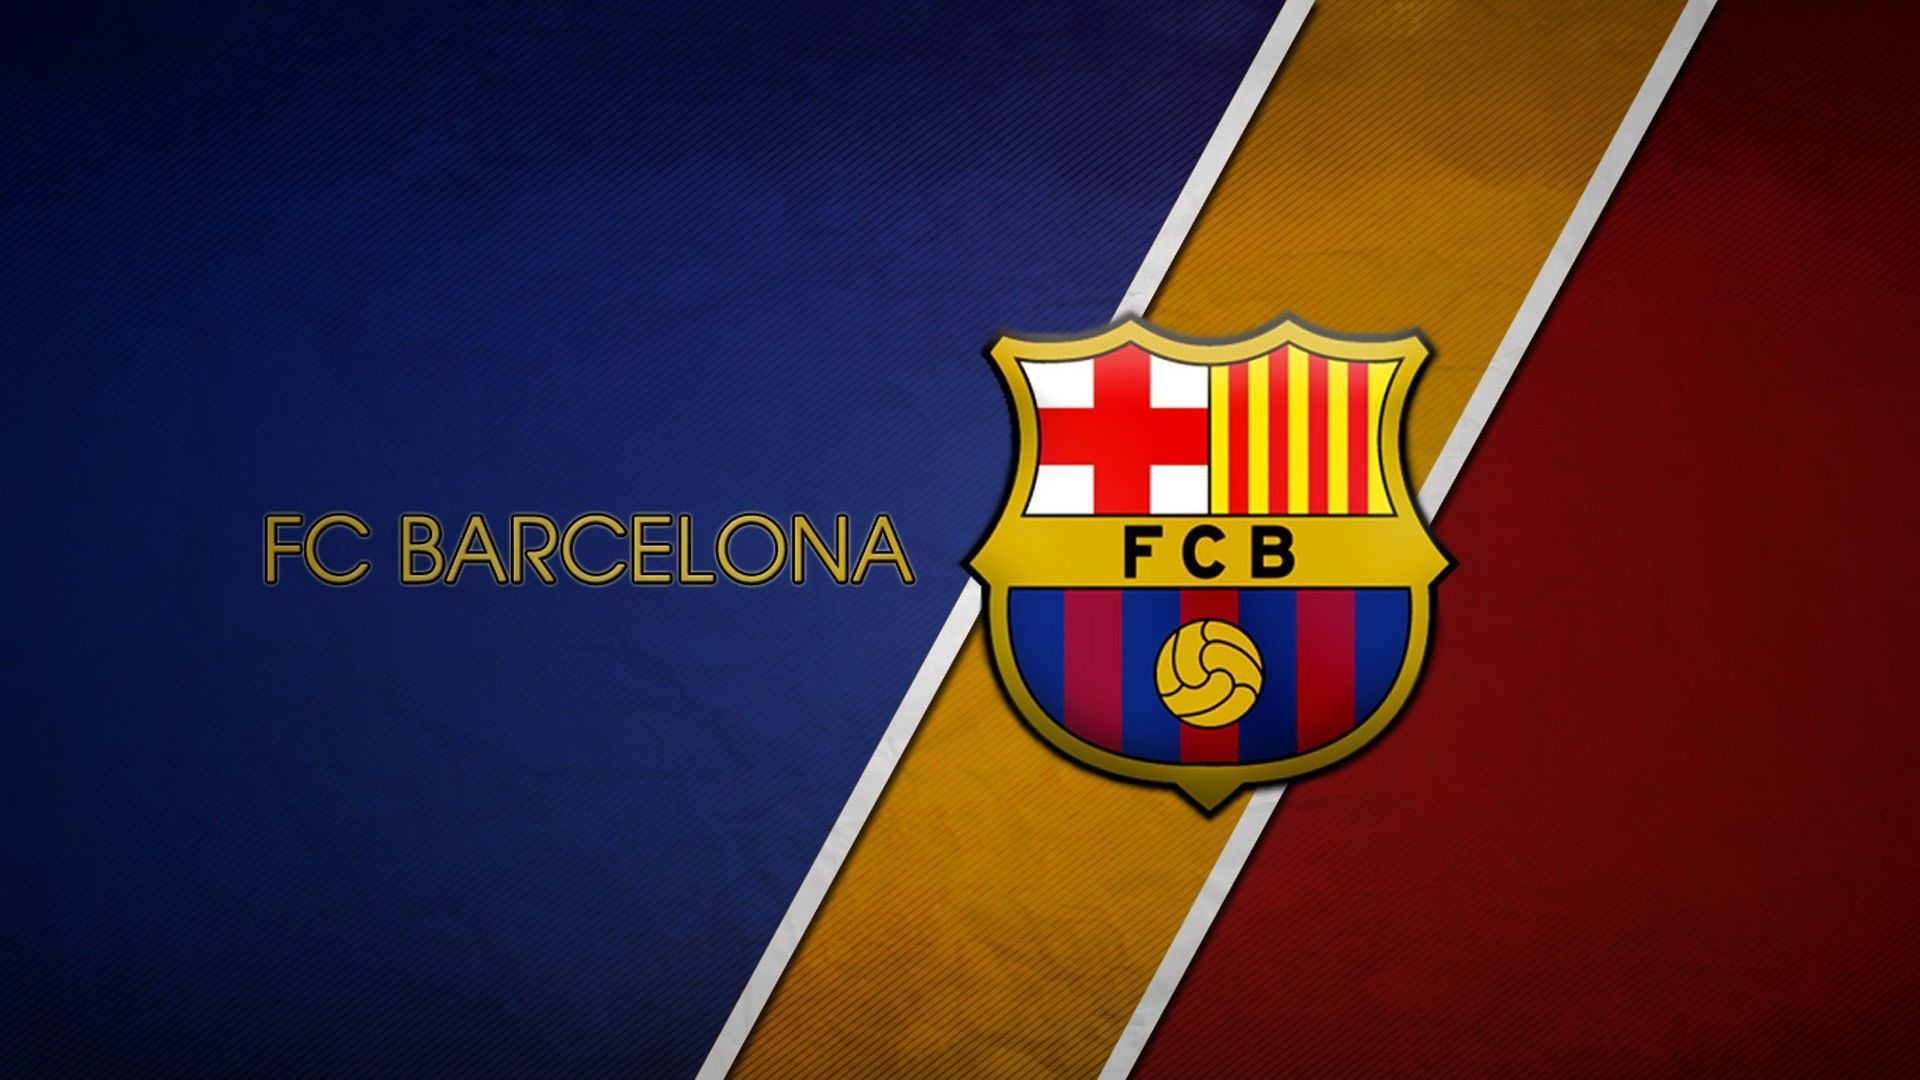 Fc barcelona football logo wallpaper my soccer obsession 333 barcelona football voltagebd Image collections